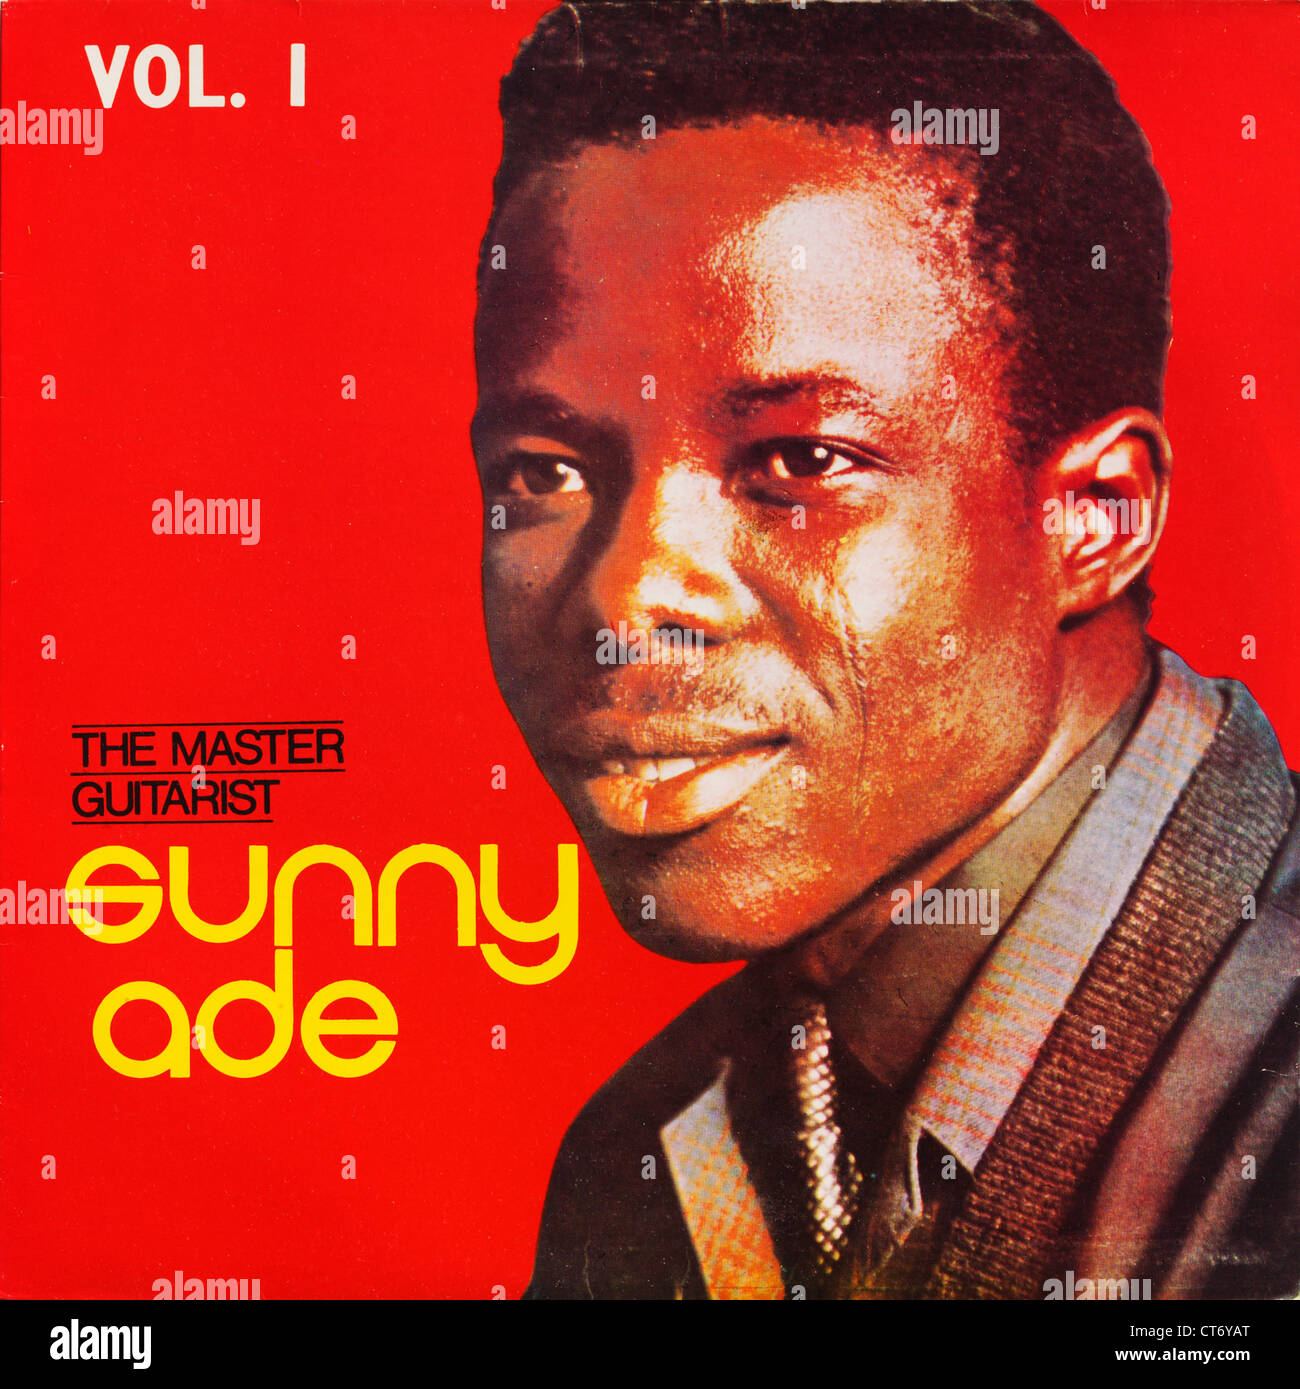 An old record album cover by the Nigerian musician King Sunny Ade.  Editorial use only.  Commercial use prohibited. - Stock Image